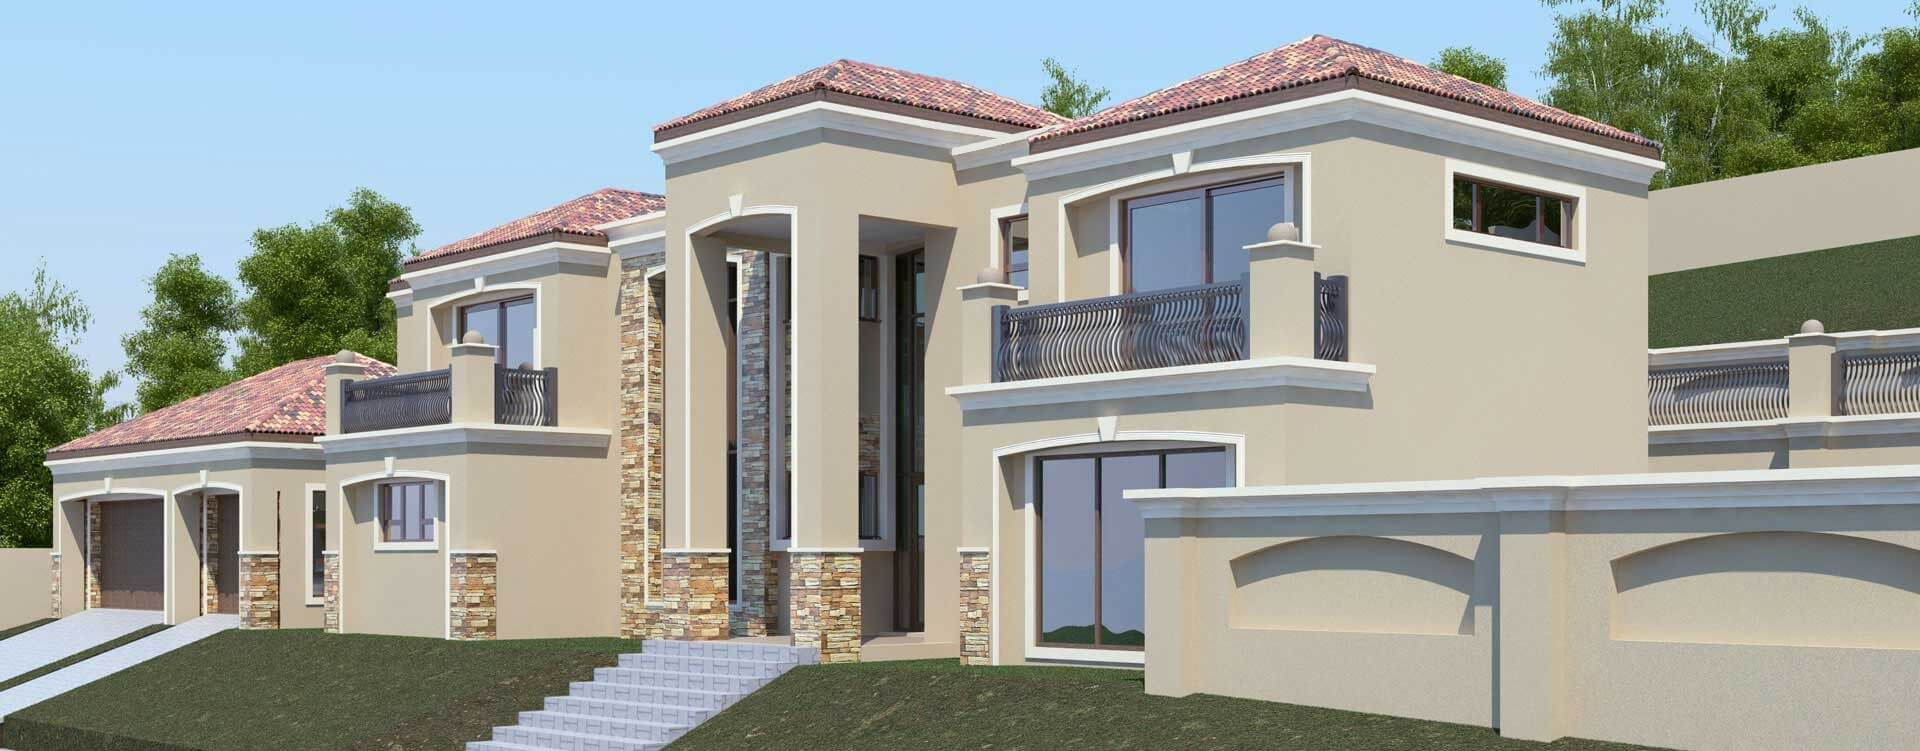 Nethouseplans affordable house plans for 6 bedroom double storey house plans